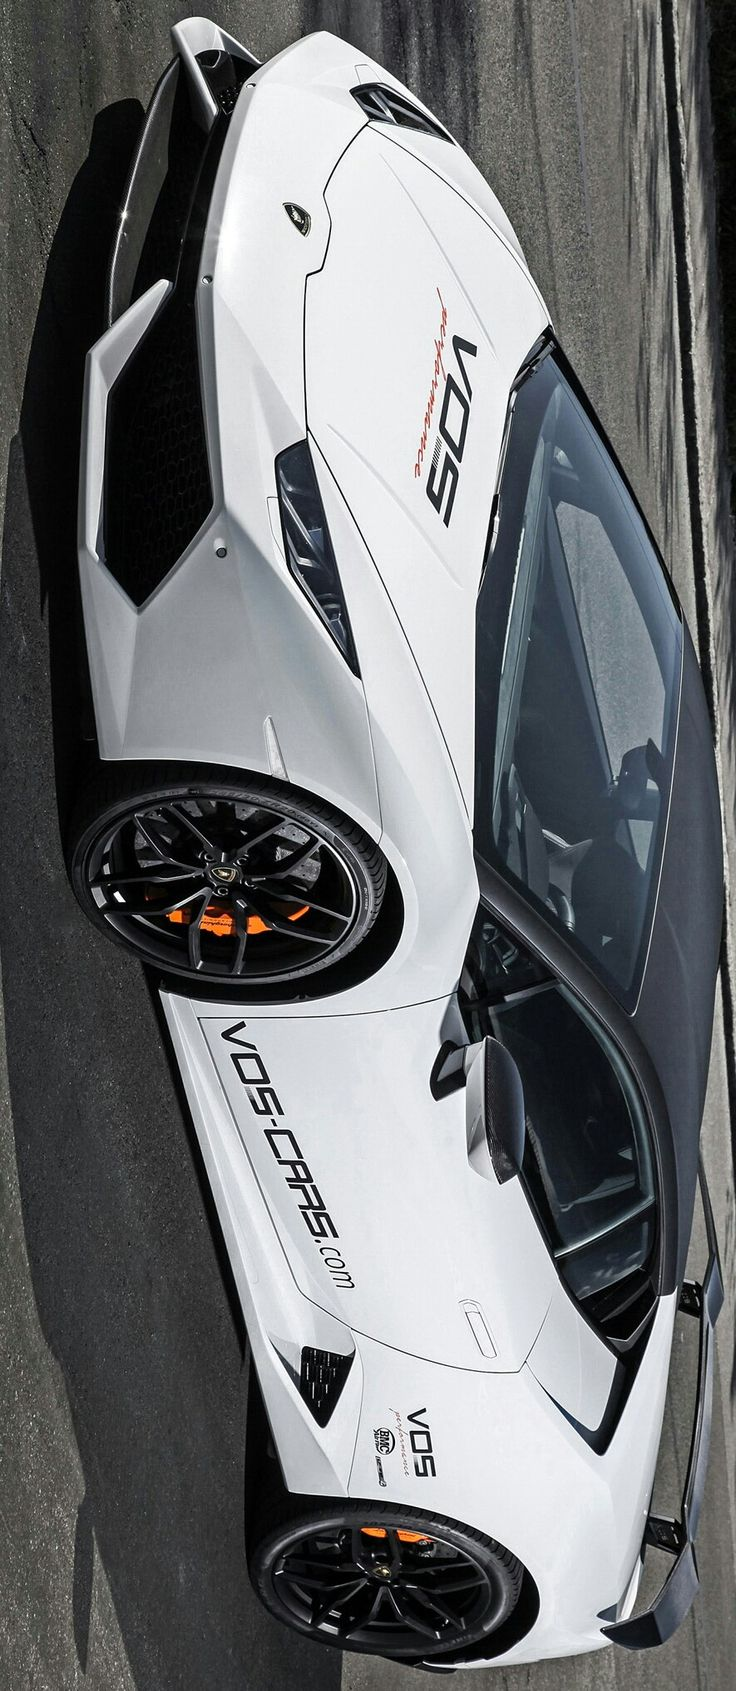 King of the Road Transport Here is how we Deliver. #LGMSports transport it with http://LGMSports.com VOS Performance Lamborghini Huracan by Levon